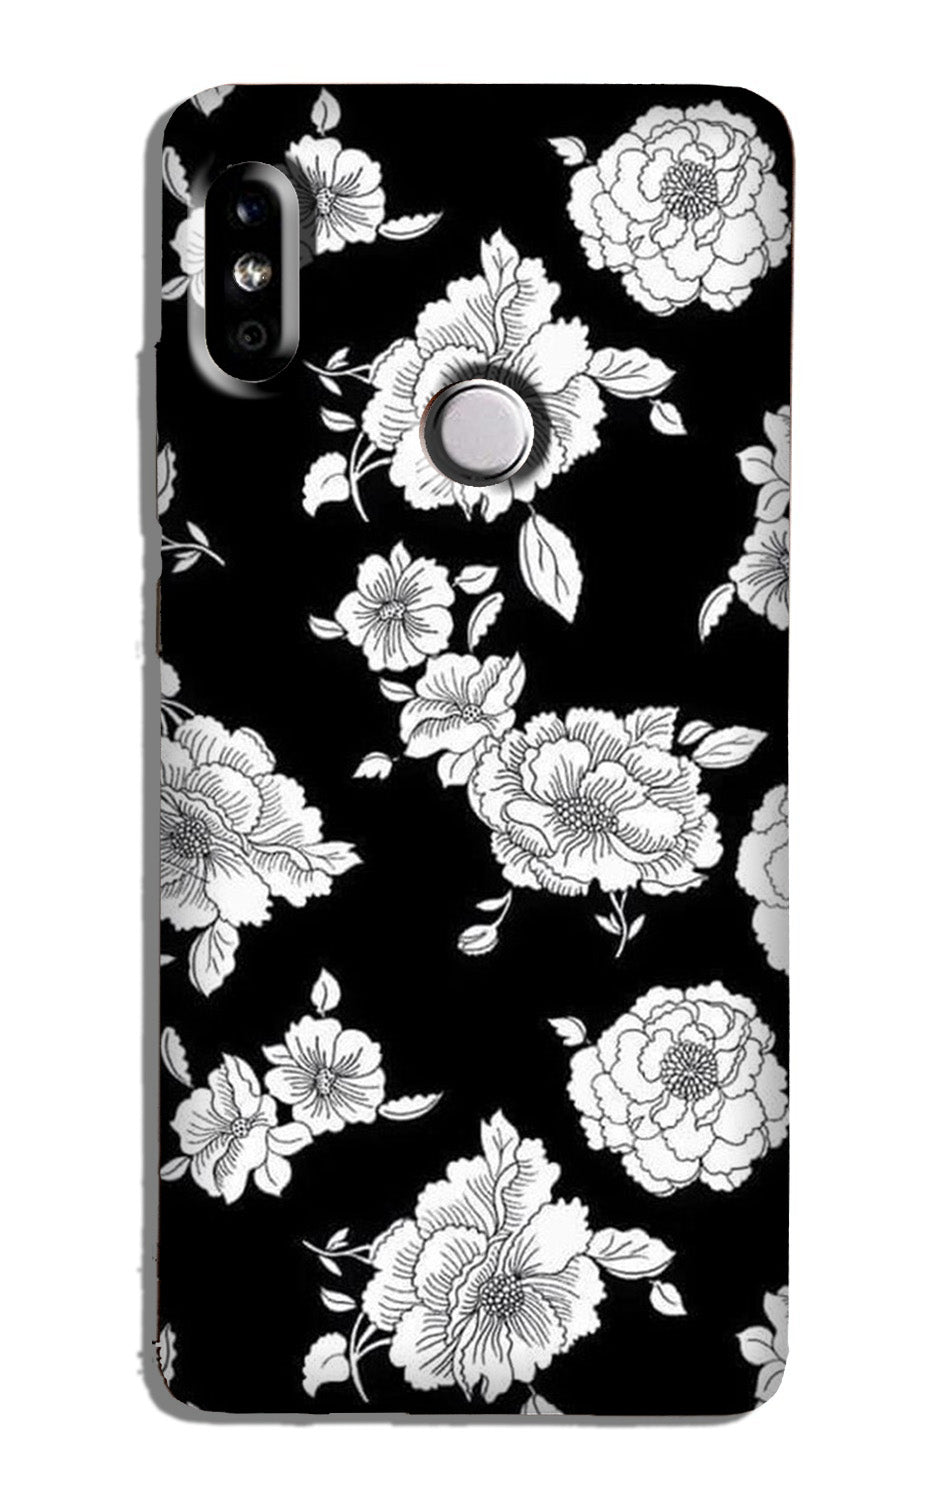 White flowers Black Background Case for Mi A2